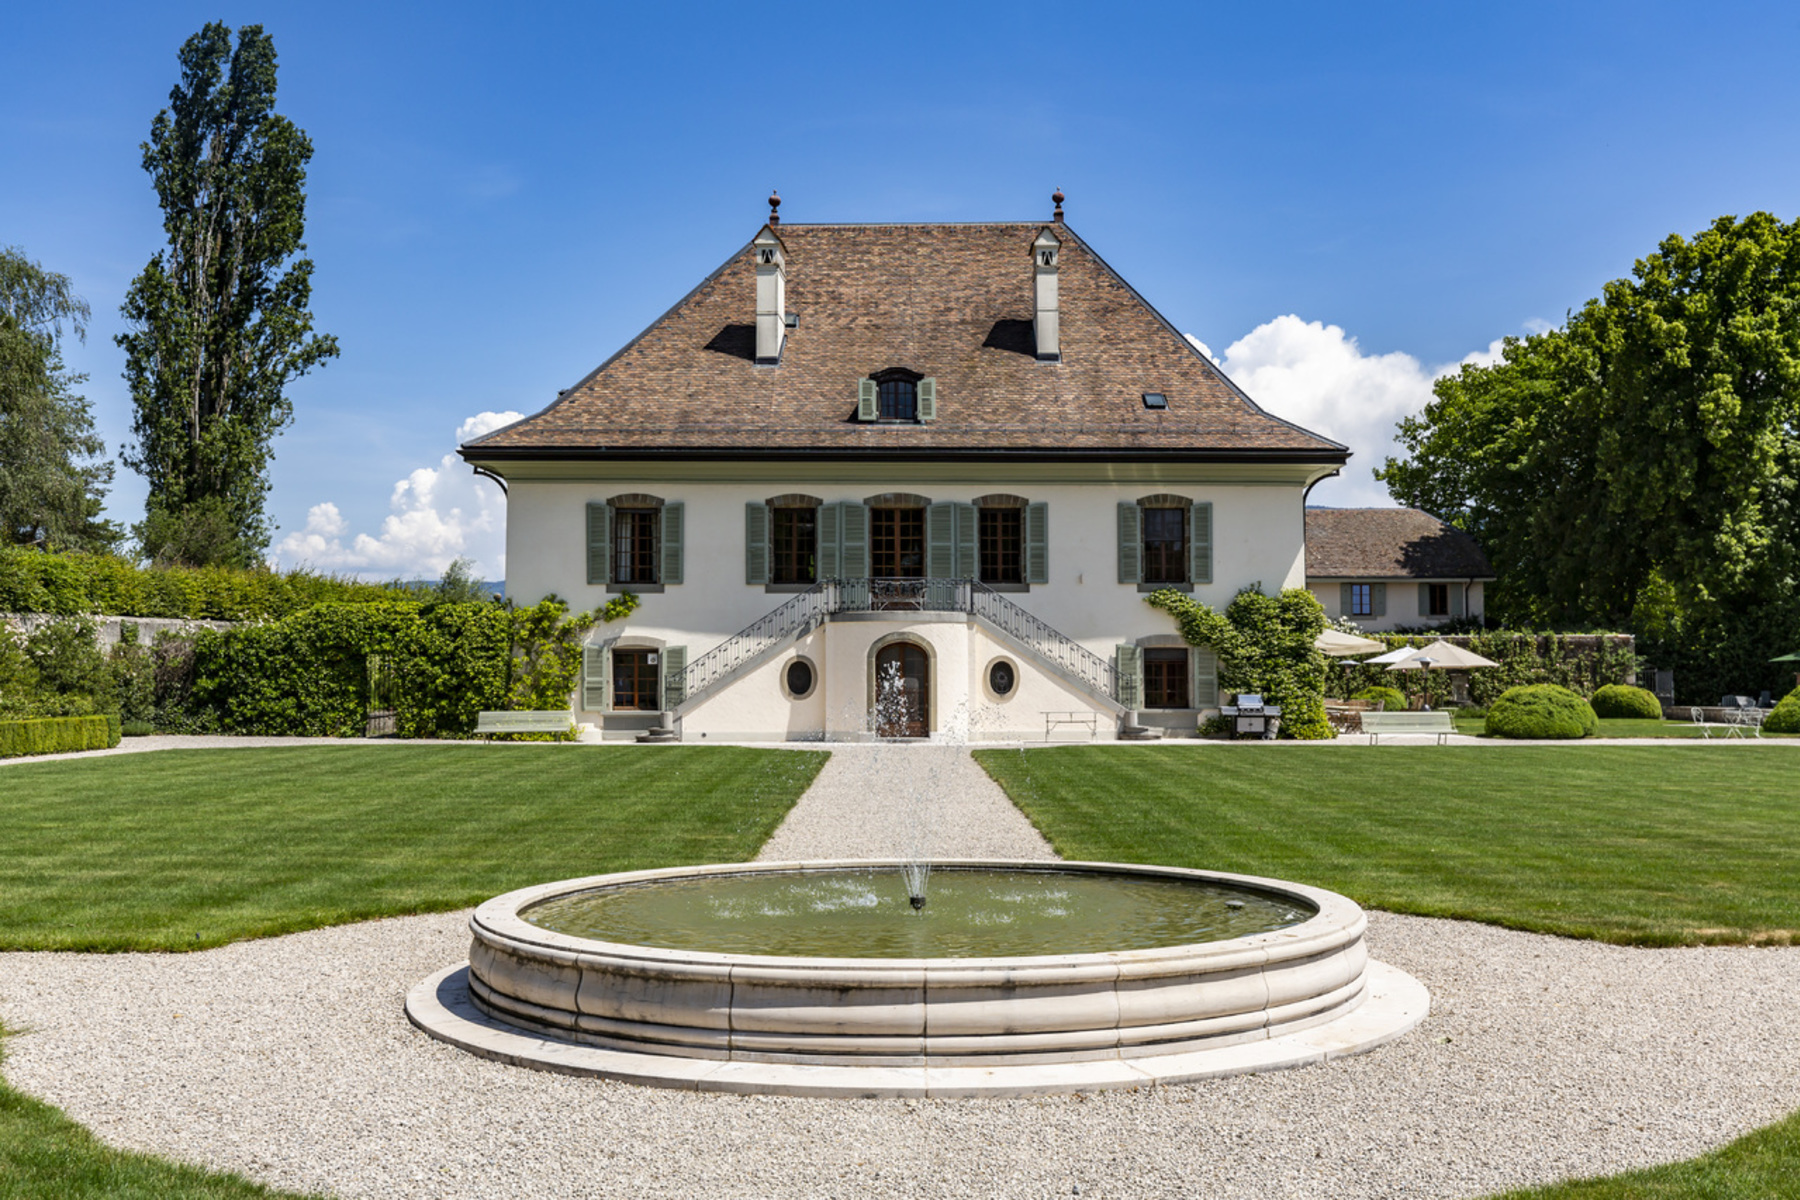 Property для того Продажа на Royal Estate Merlinge Castle Gy Other Geneve, Женева 1252 Швейцария